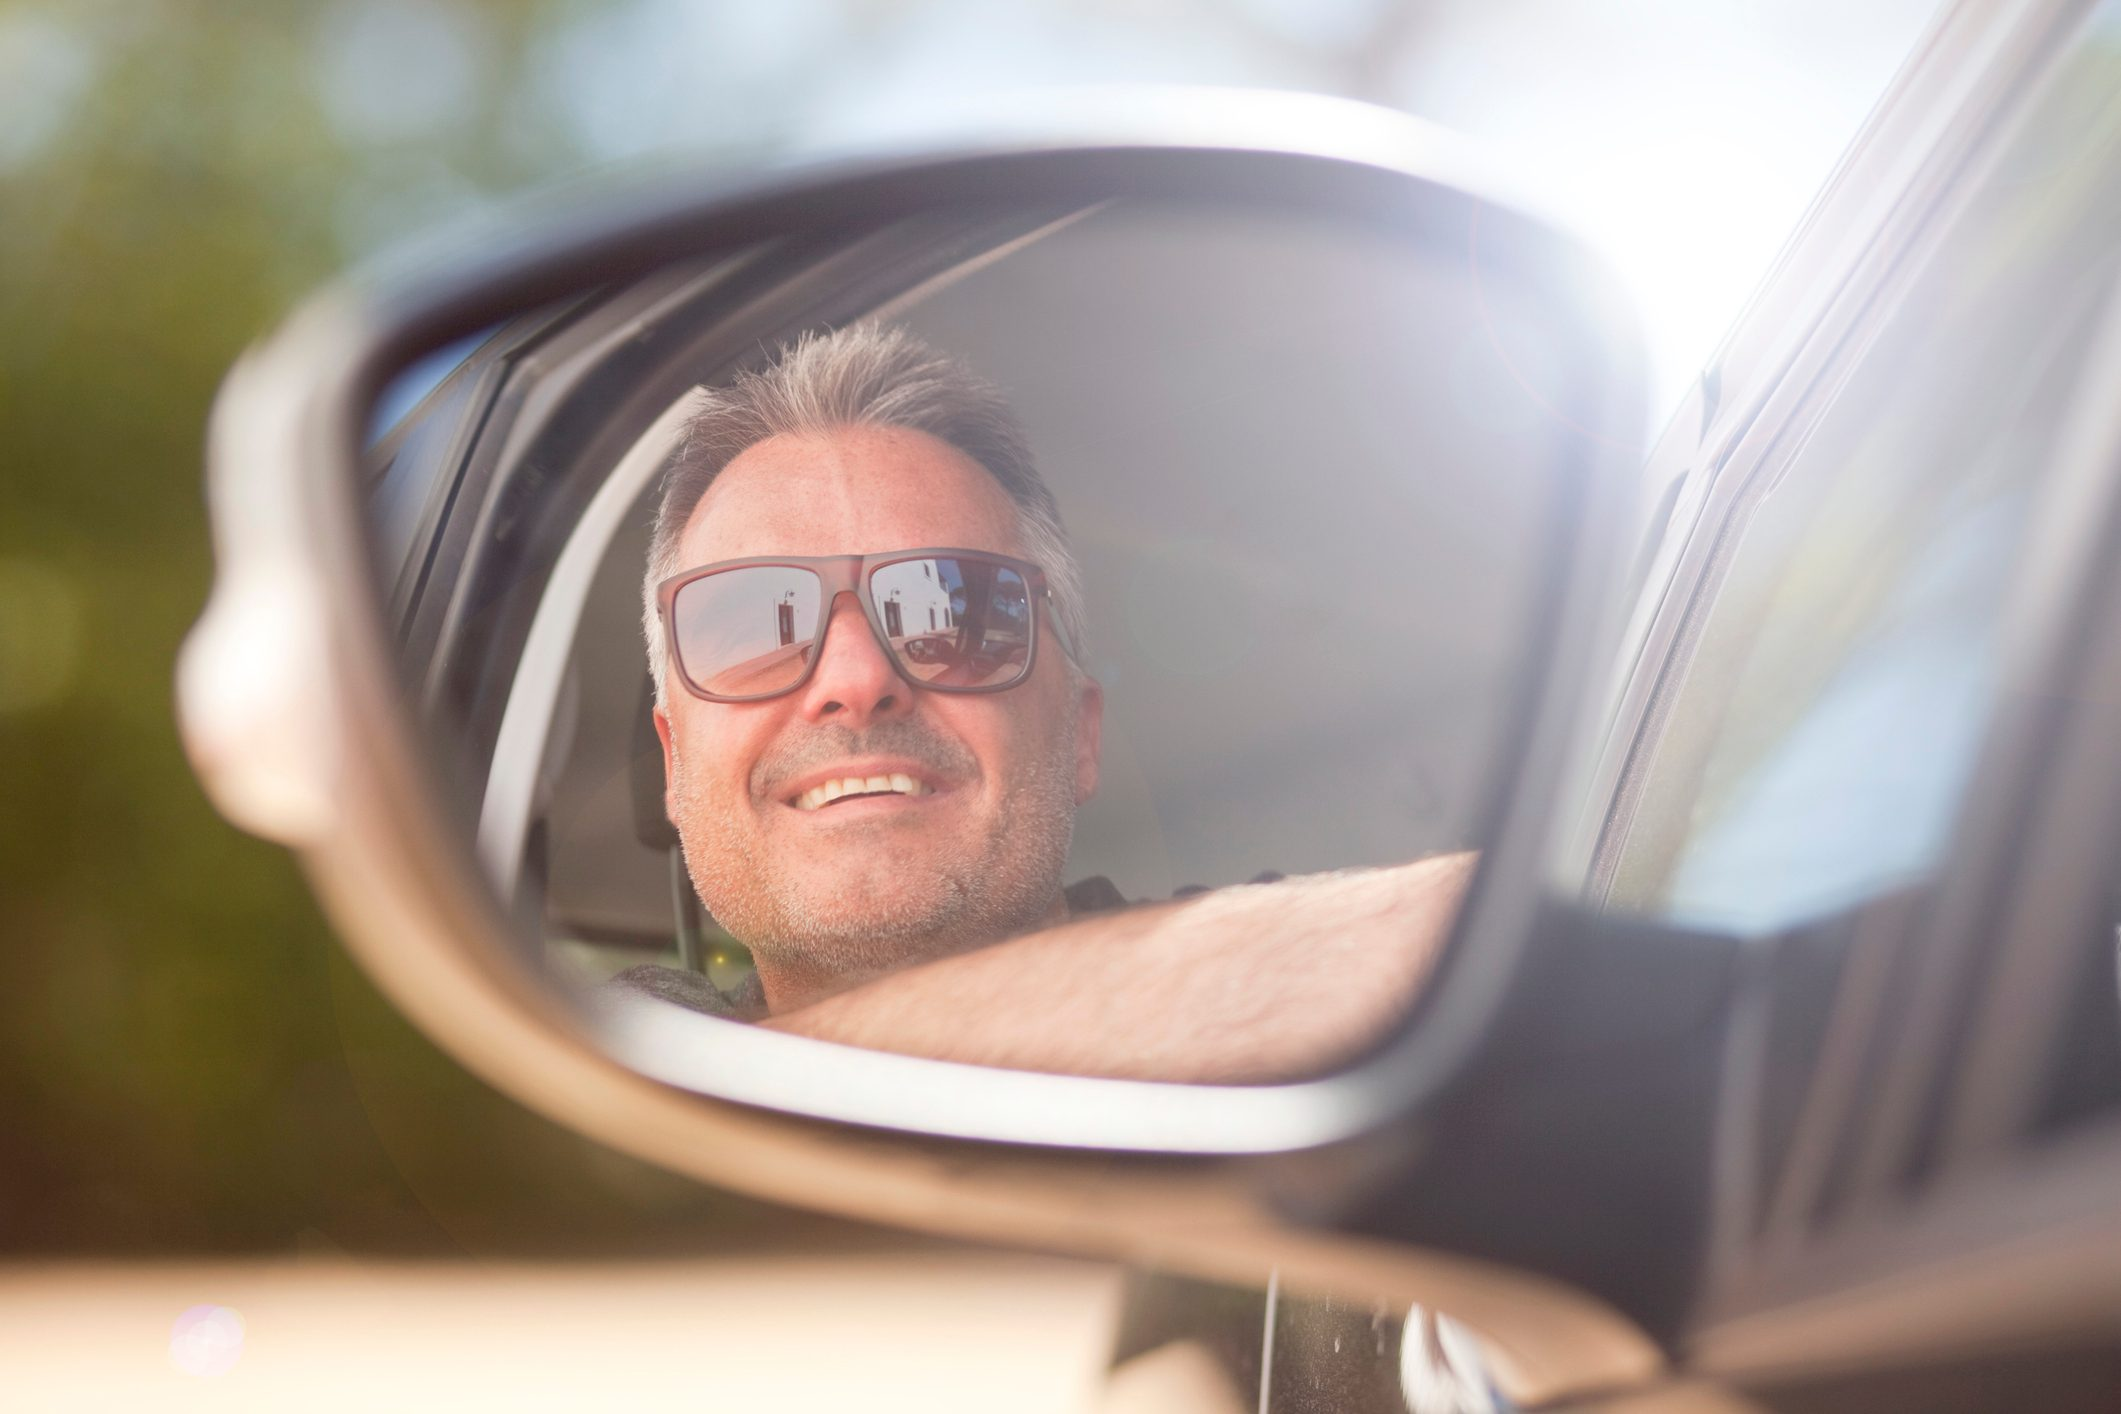 man in side view mirror reflection